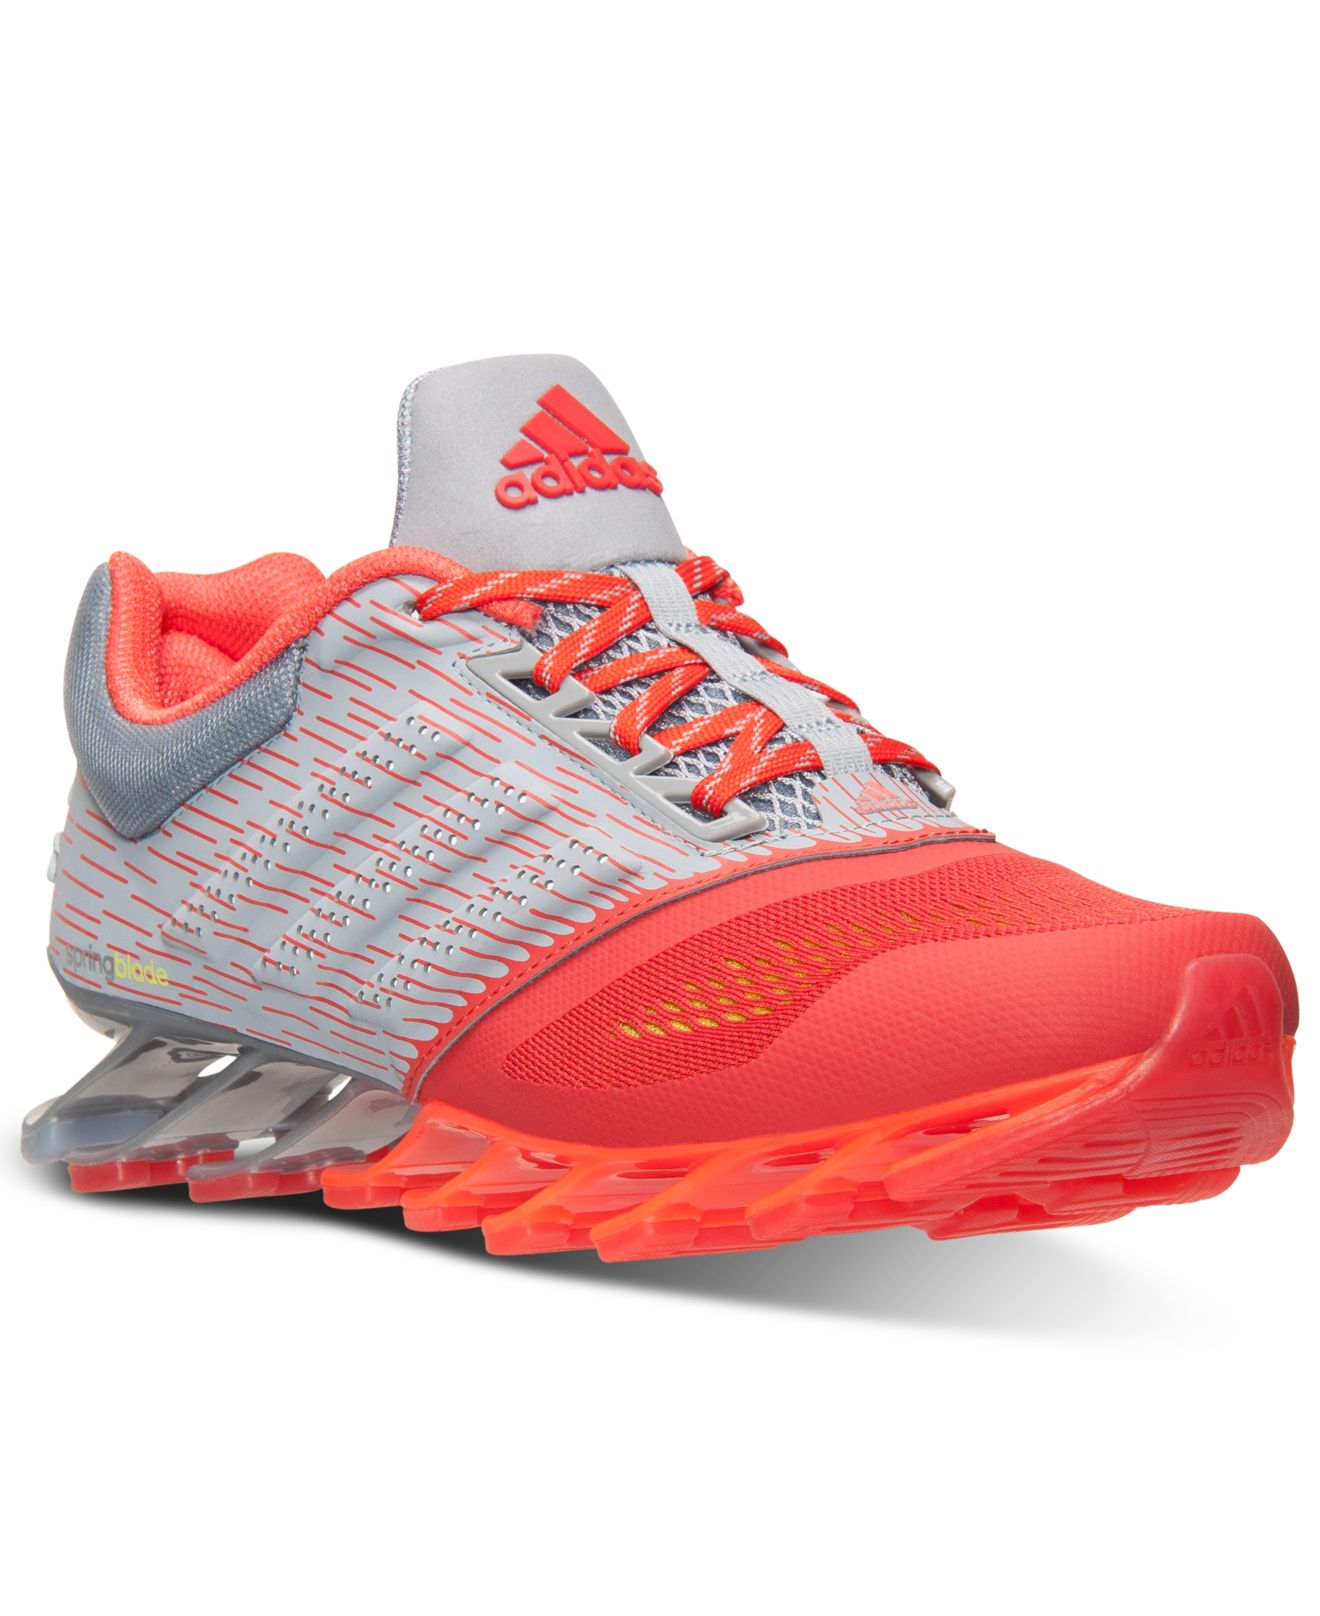 77812c3ef0 ... switzerland lyst adidas mens springblade drive 2.0 running sneakers  from eb9bc 9f5c1